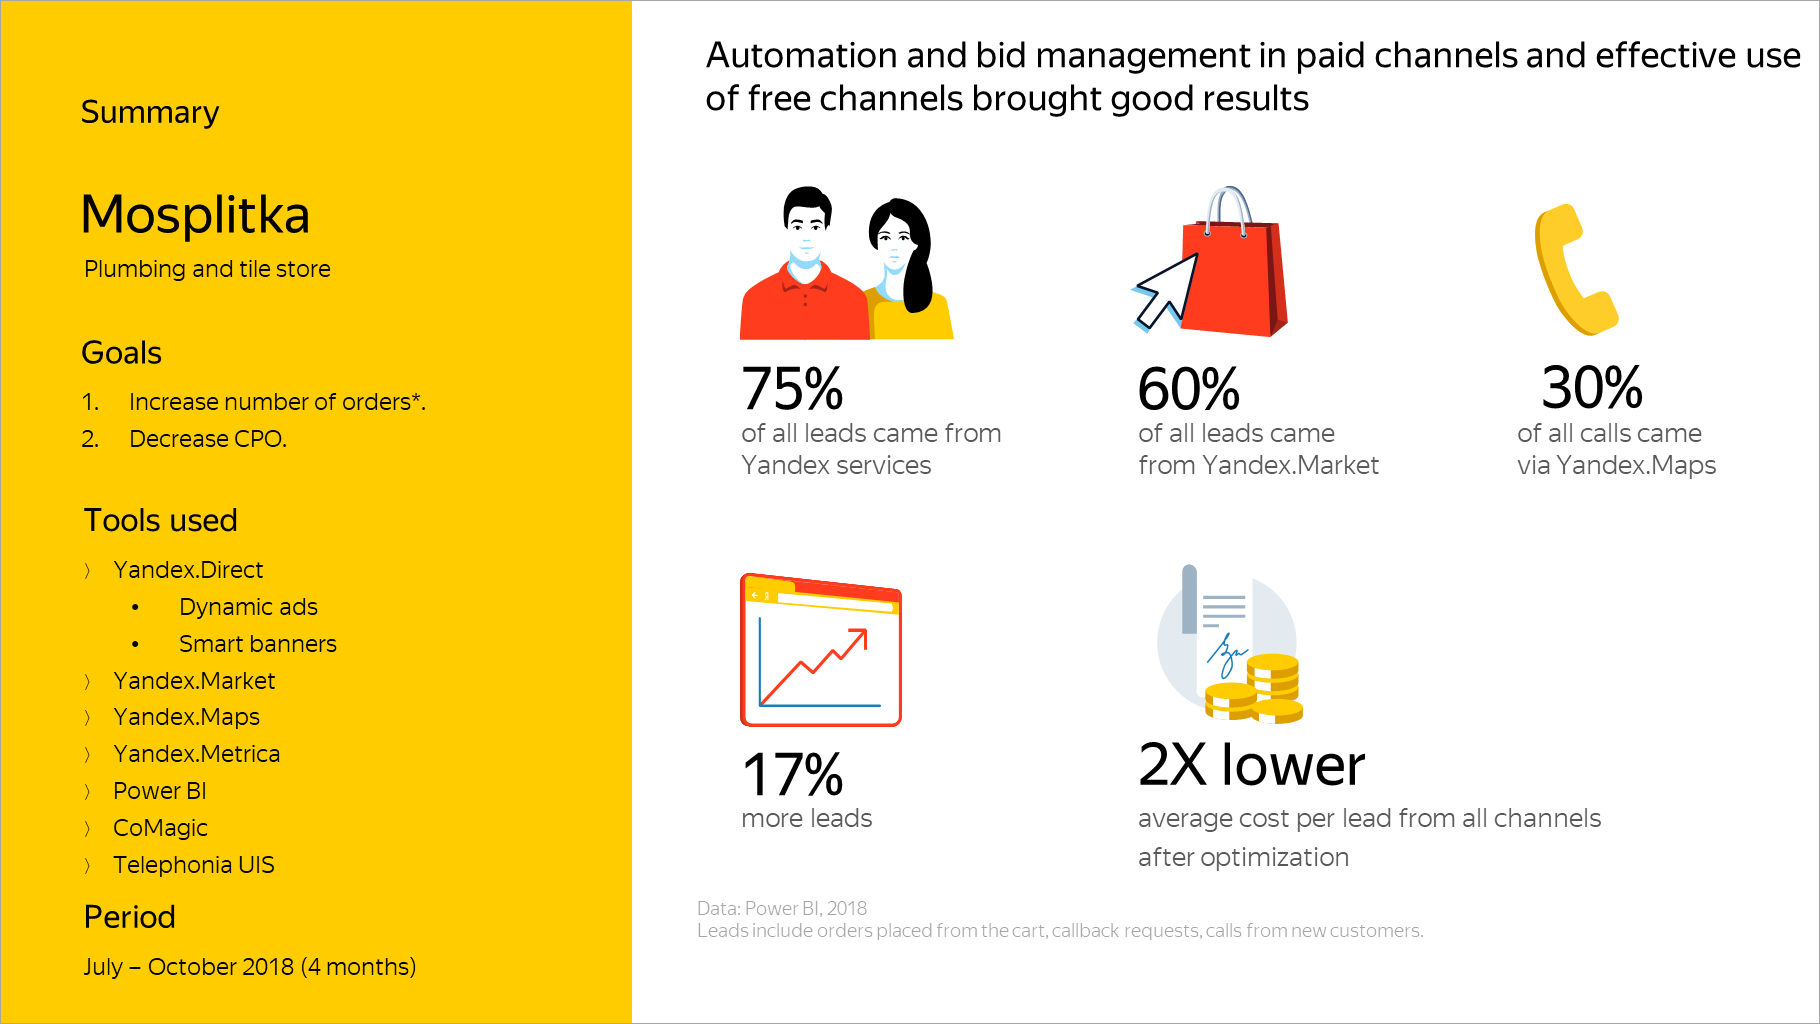 Automation and bid management in paid channels and effective use of free channels brought good results